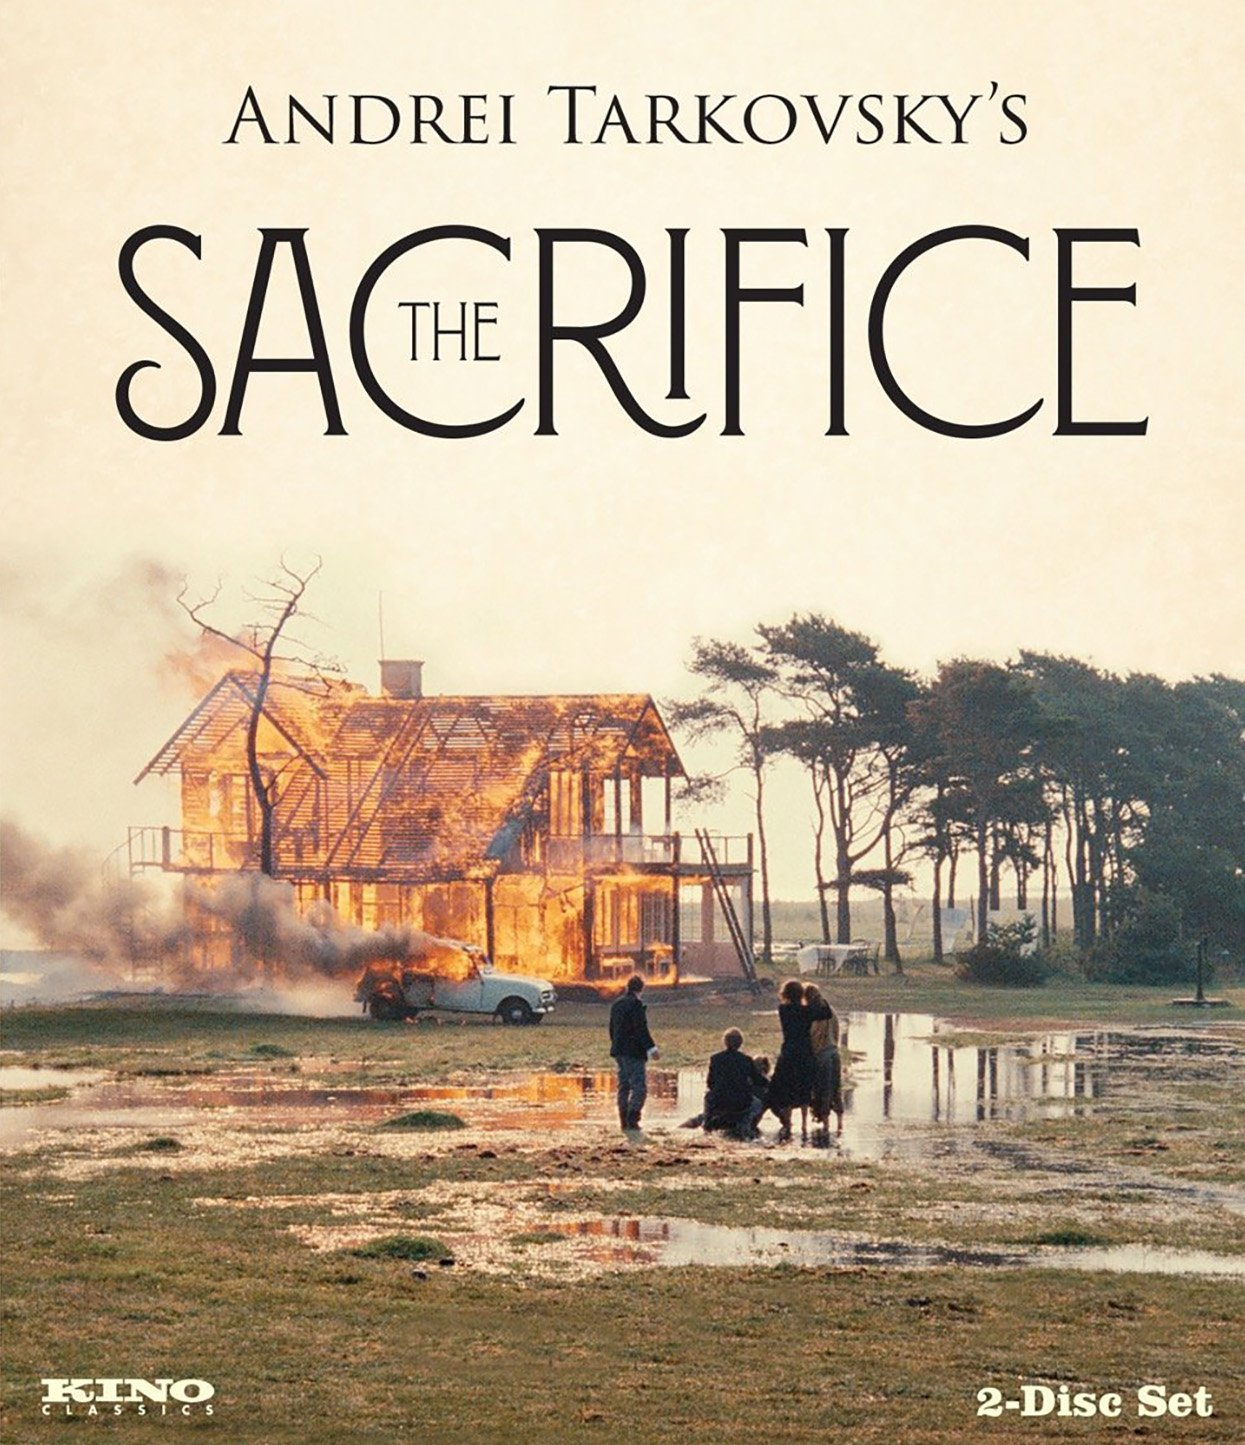 Review: Andrei Tarkovsky's The Sacrifice on Kino Lorber Blu-ray